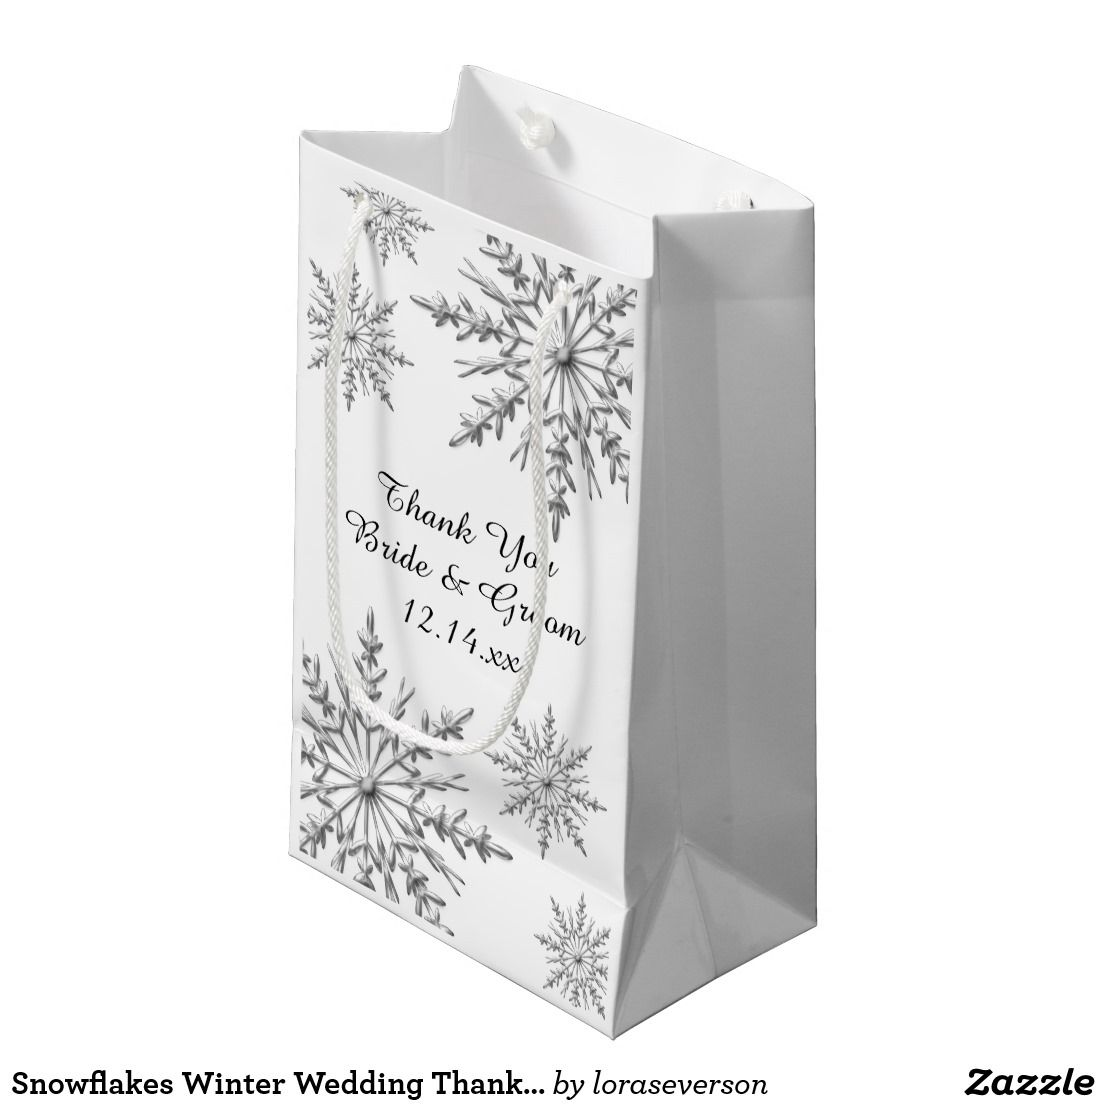 Snowflakes Winter Wedding Thank You Small Gift Bag | Wedding Favors ...